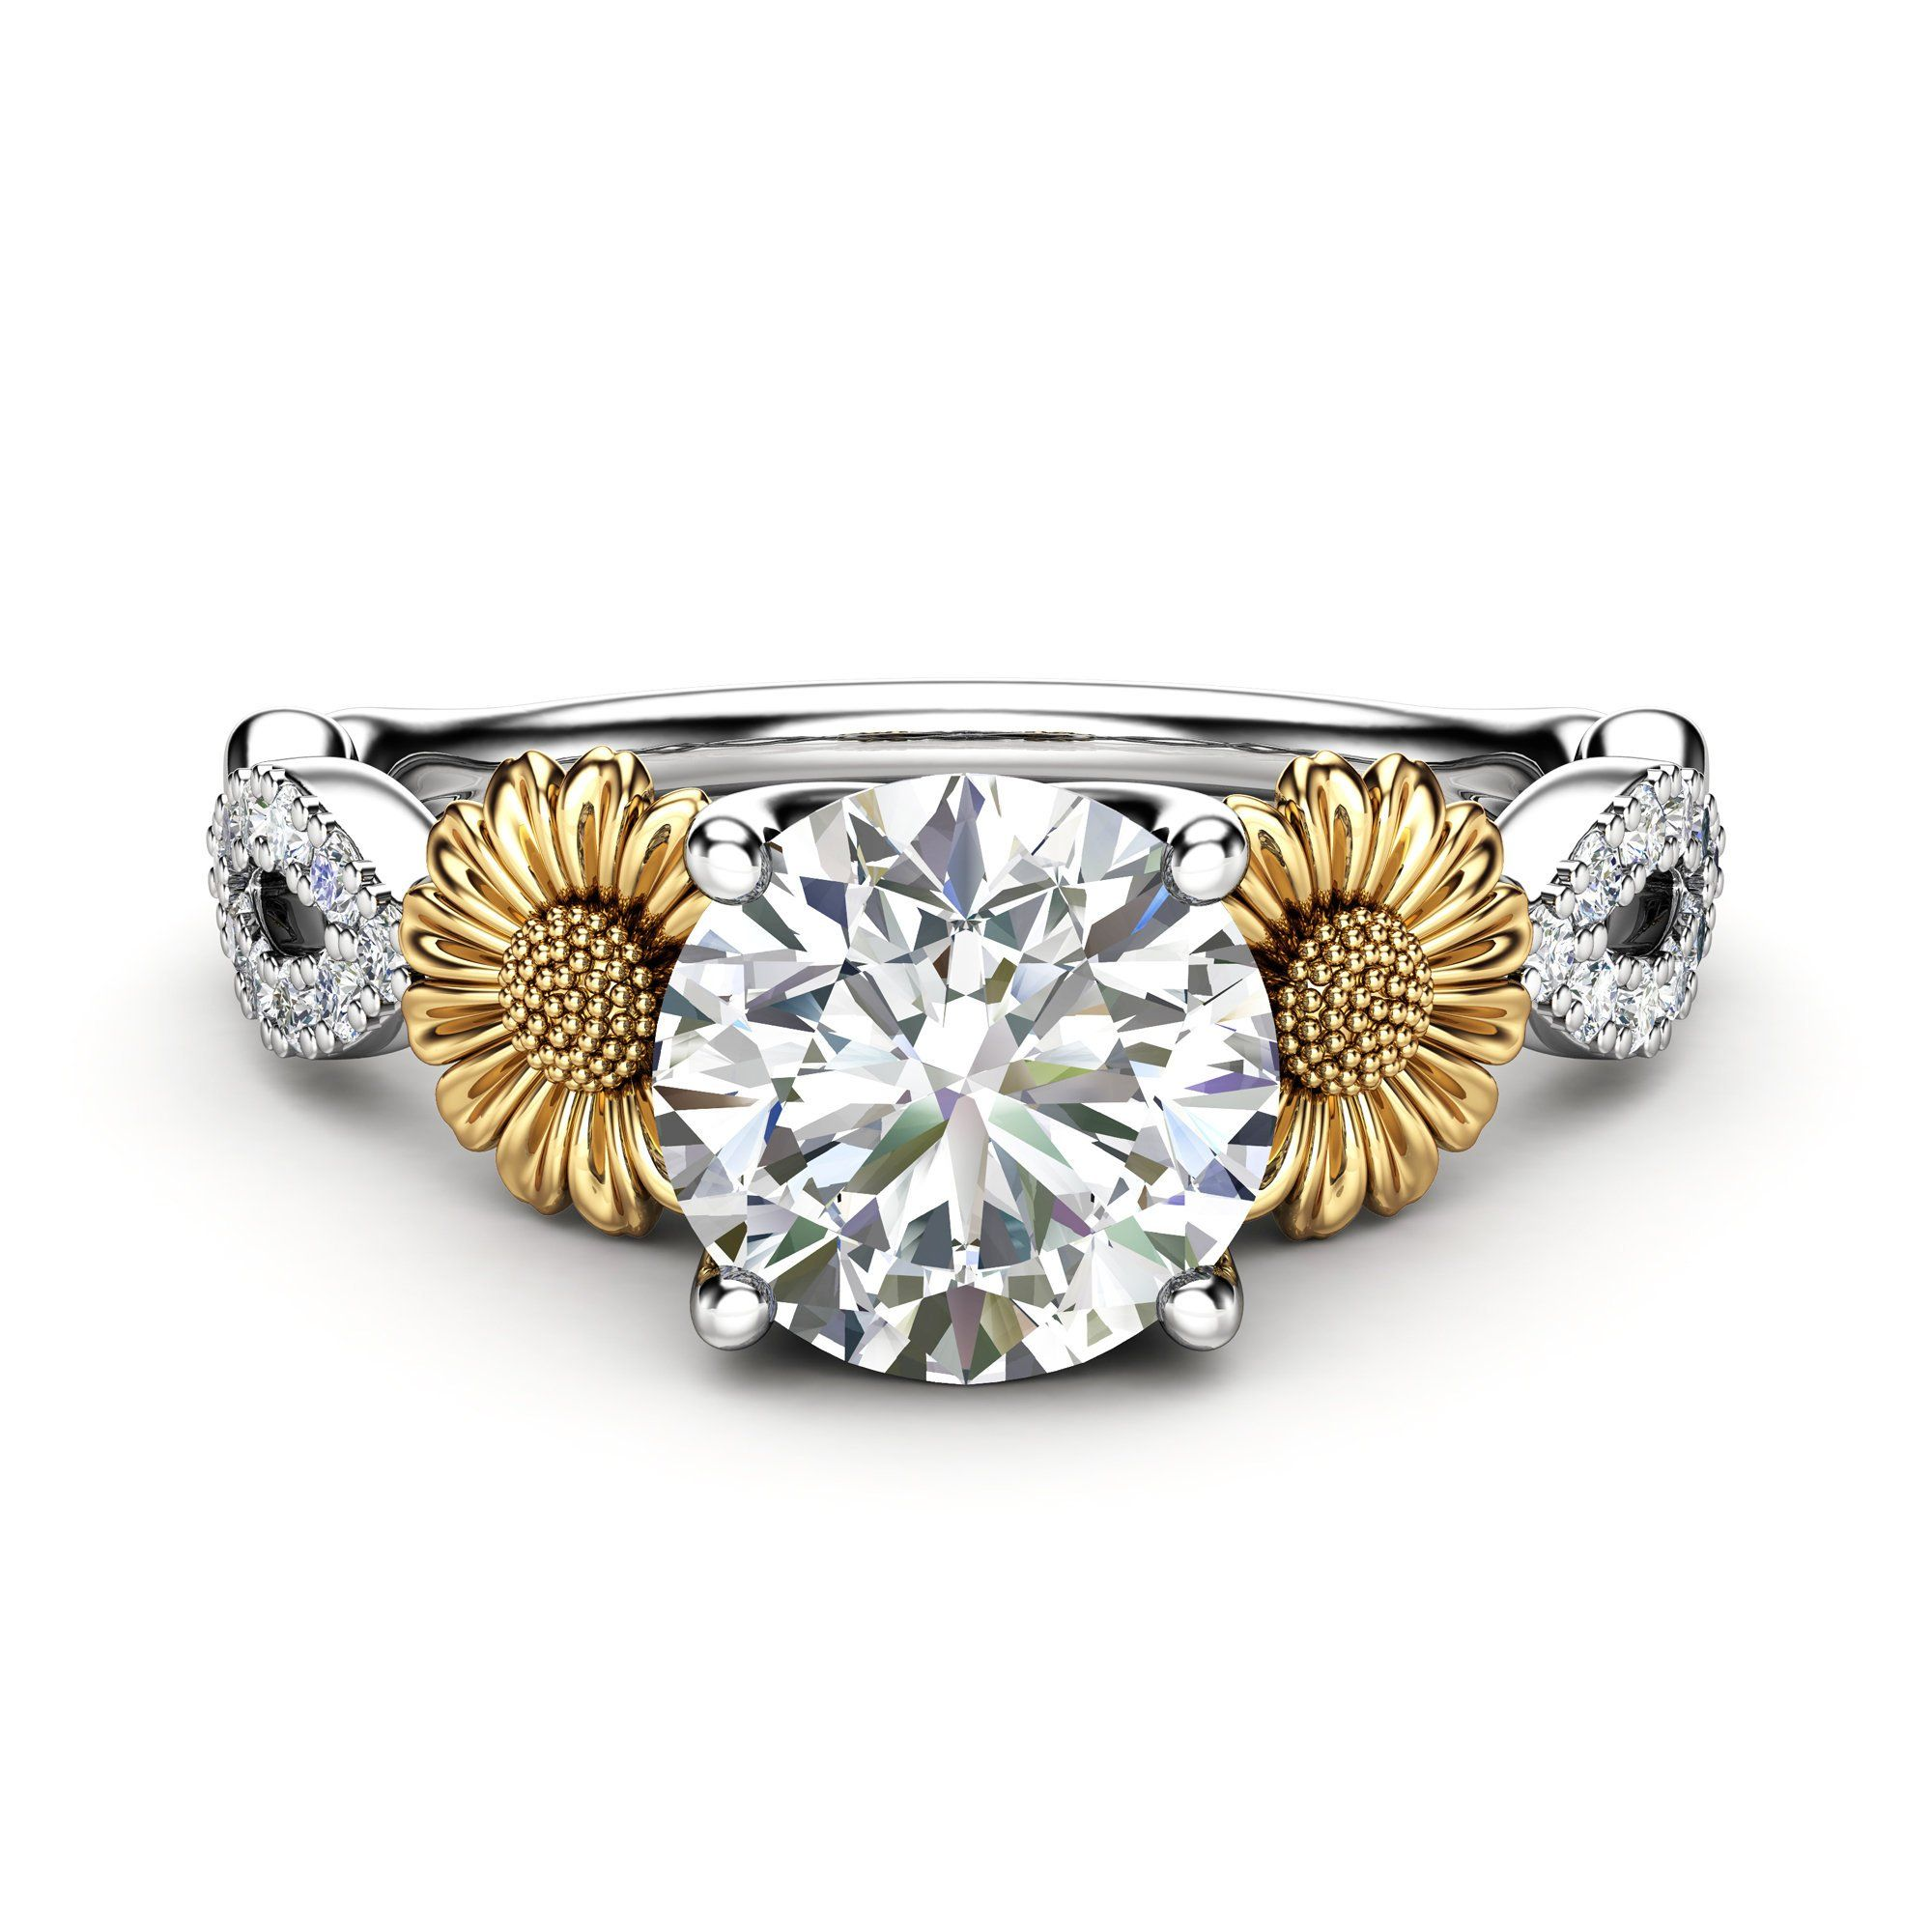 Sunflower Engagement Ring, 14K White and Yellow Gold